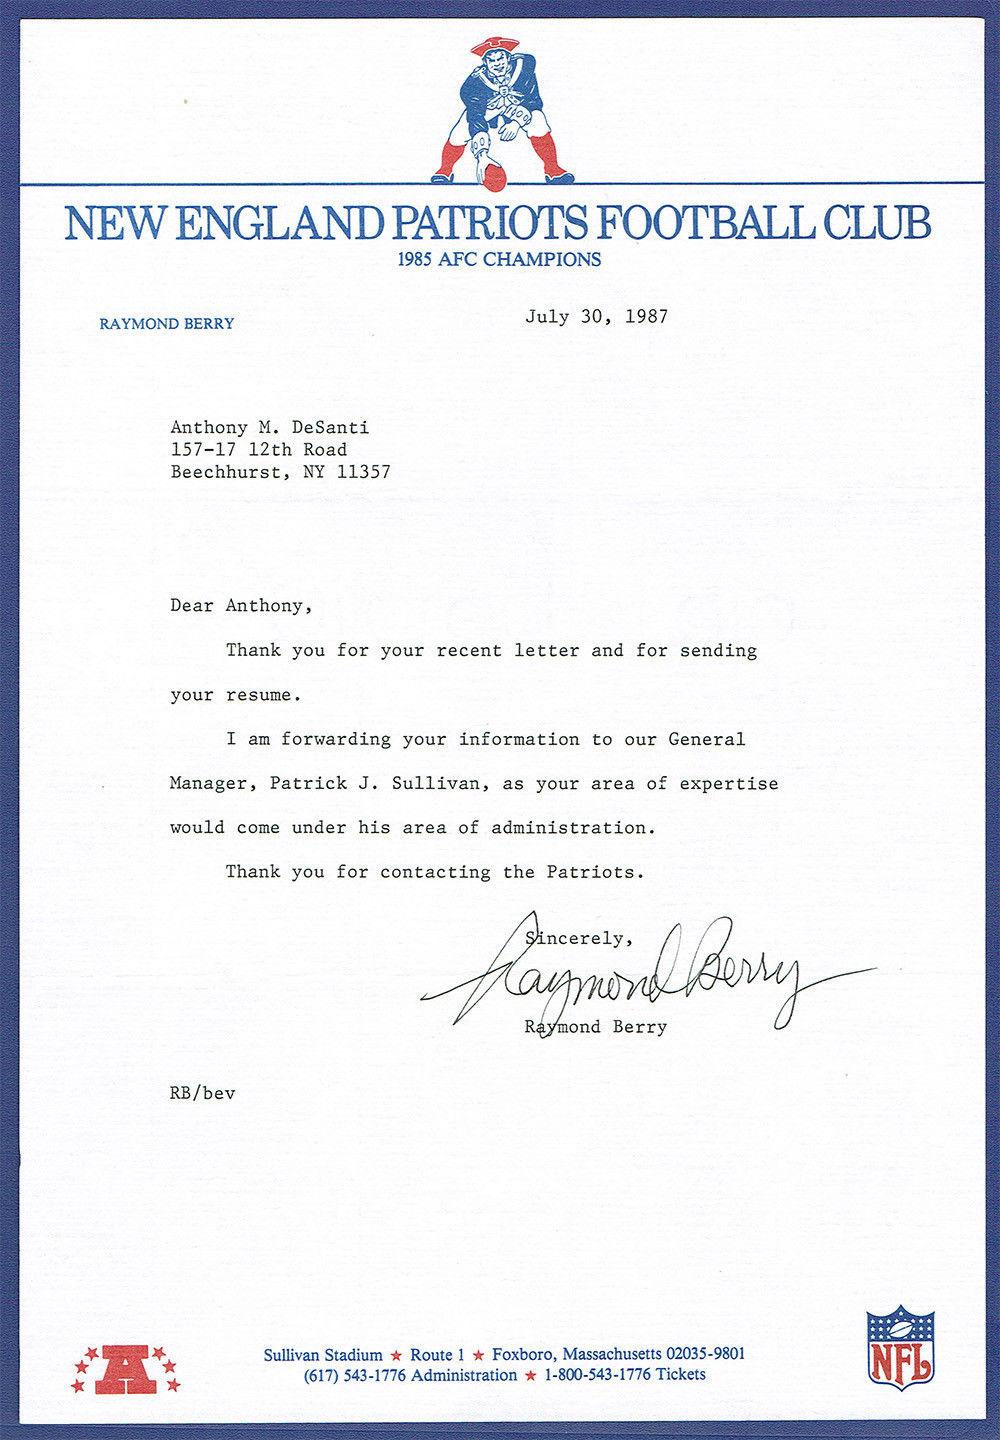 Raymond Berry Signed Auto New England Patriots Original Letter RARE